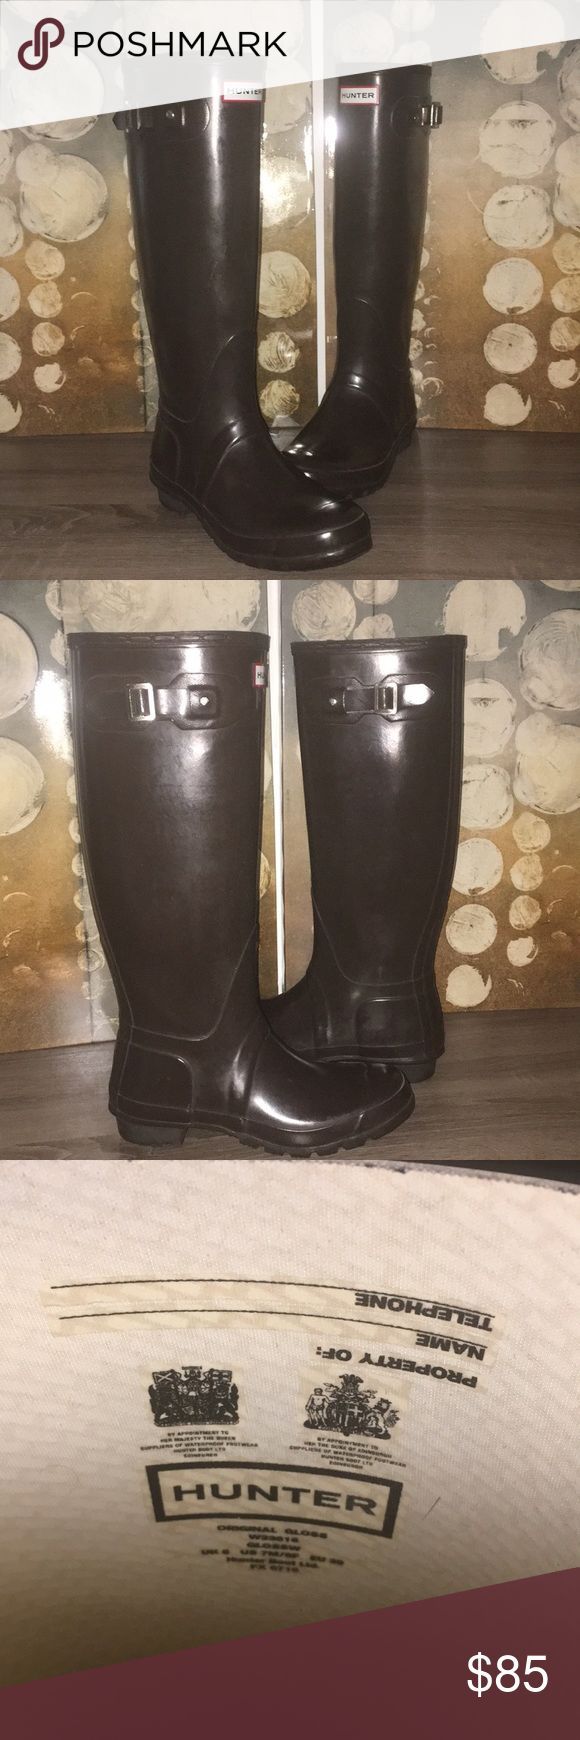 Authentic Hunter Rain Boots Tall Hunter Rain Boots. LIKE NEW. Have been worn once. Are the wrong size. Do not have the original box. Hunter Boots Shoes Winter & Rain Boots